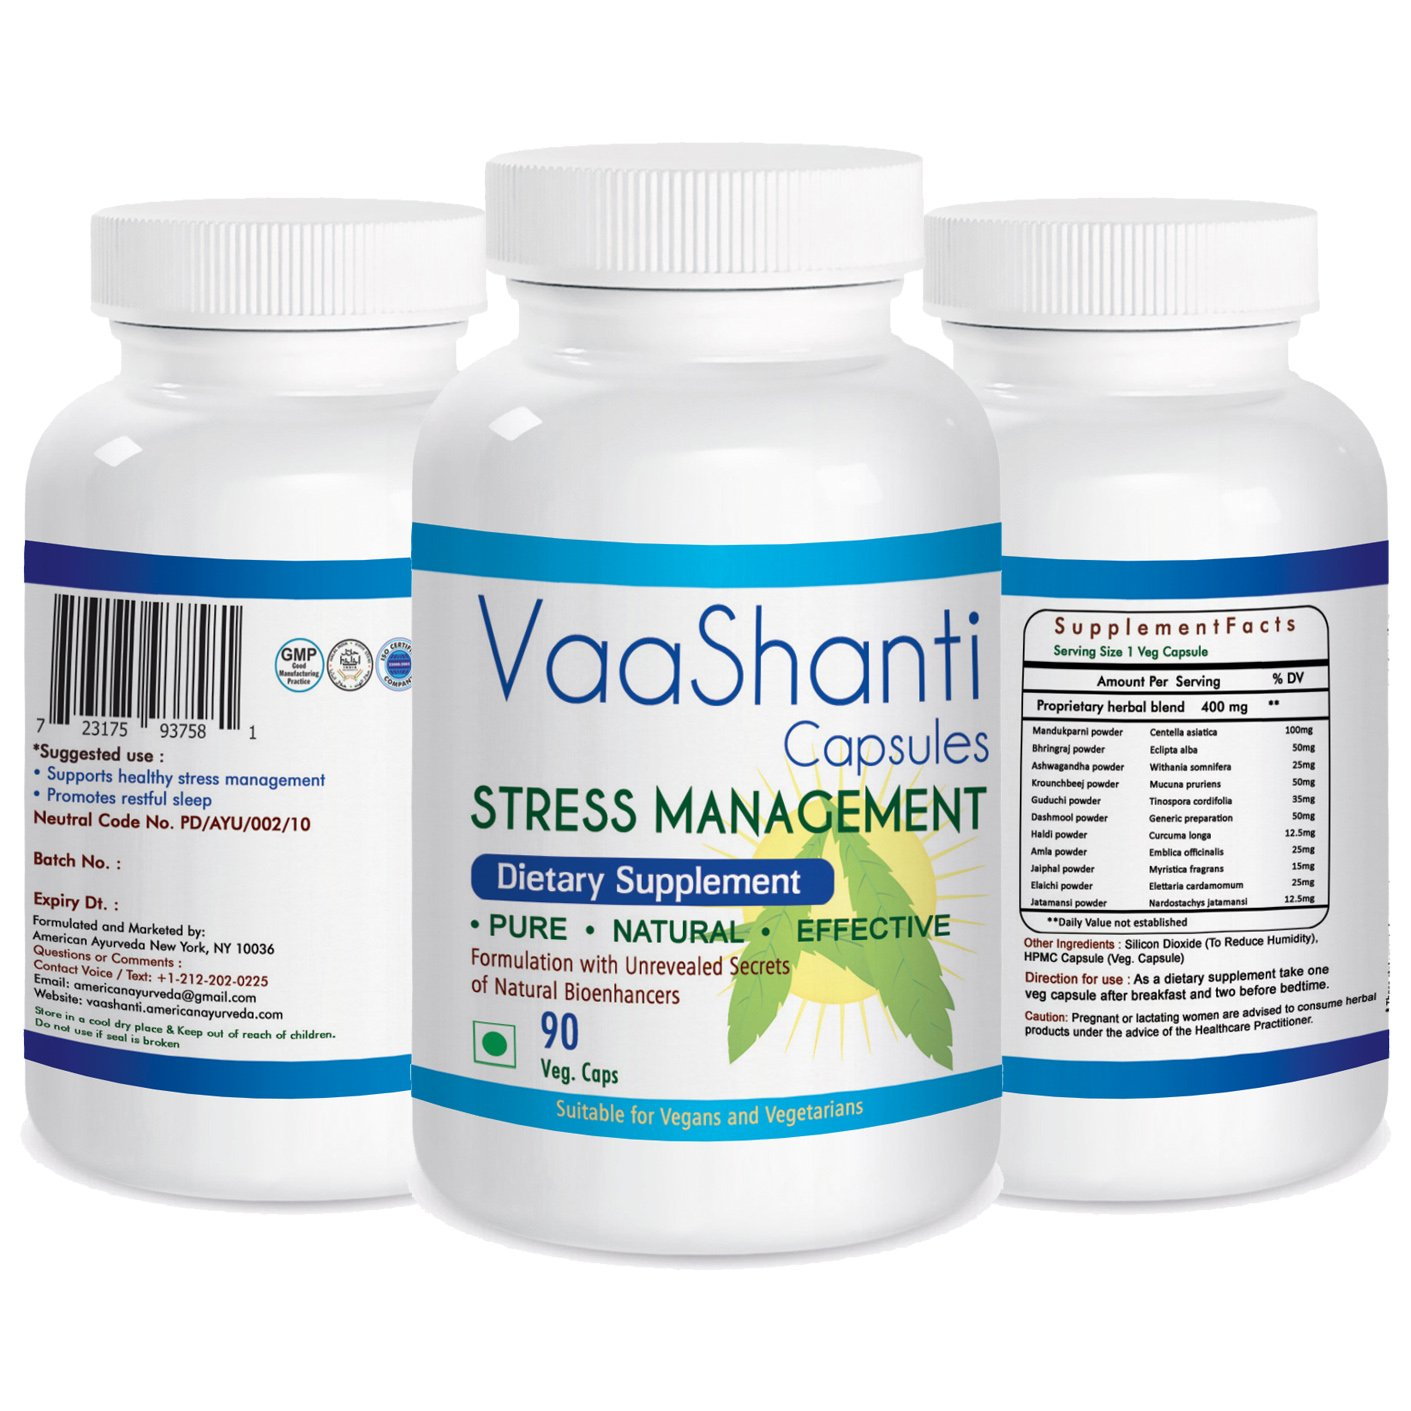 VaaShanti Herbal Sleep Aids & Stress Relief 90 Veggie Capsules with Proven Herbs Ashwagandha, Brahmi & more - Deep, Sound Sleep, Wake up Refreshed - Non Habit forming Supplement by American Ayurveda